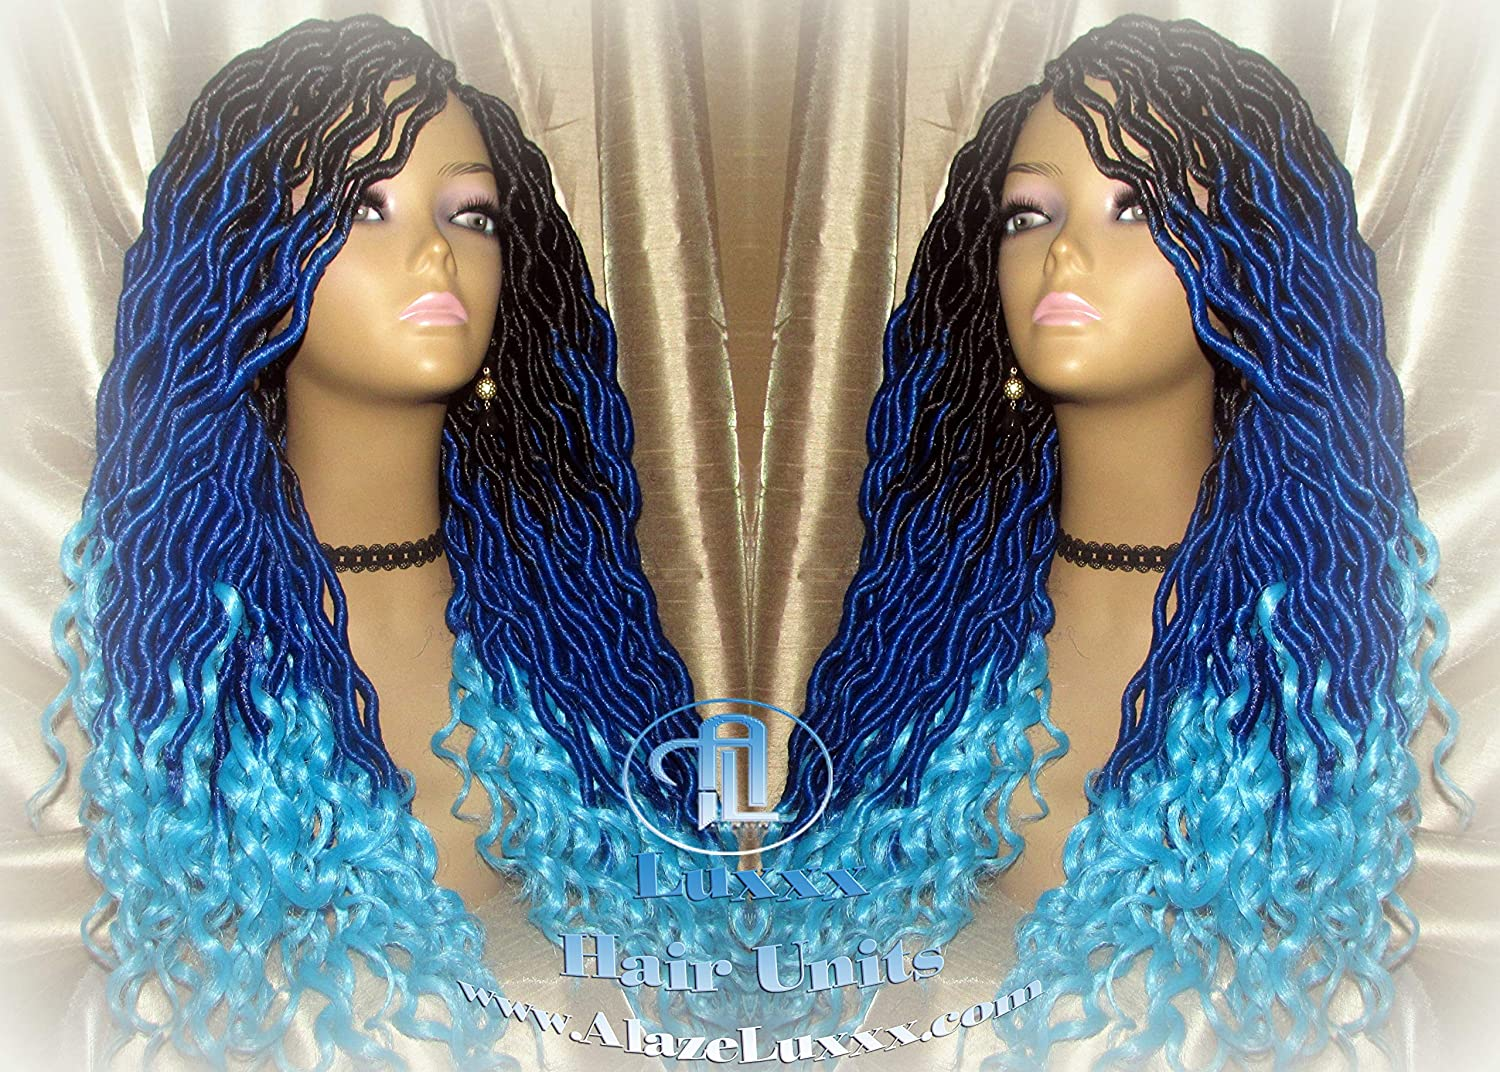 Amazon Com Goddess Faux Locs Blue Ombre Curly Long Wig Synthetic Dreads Crochet Braids Mermaid Hair Drag Queen Gradient Ombre Carnival Festival Hair Braid Wig Cosplay Wig Sonic Wig Handmade